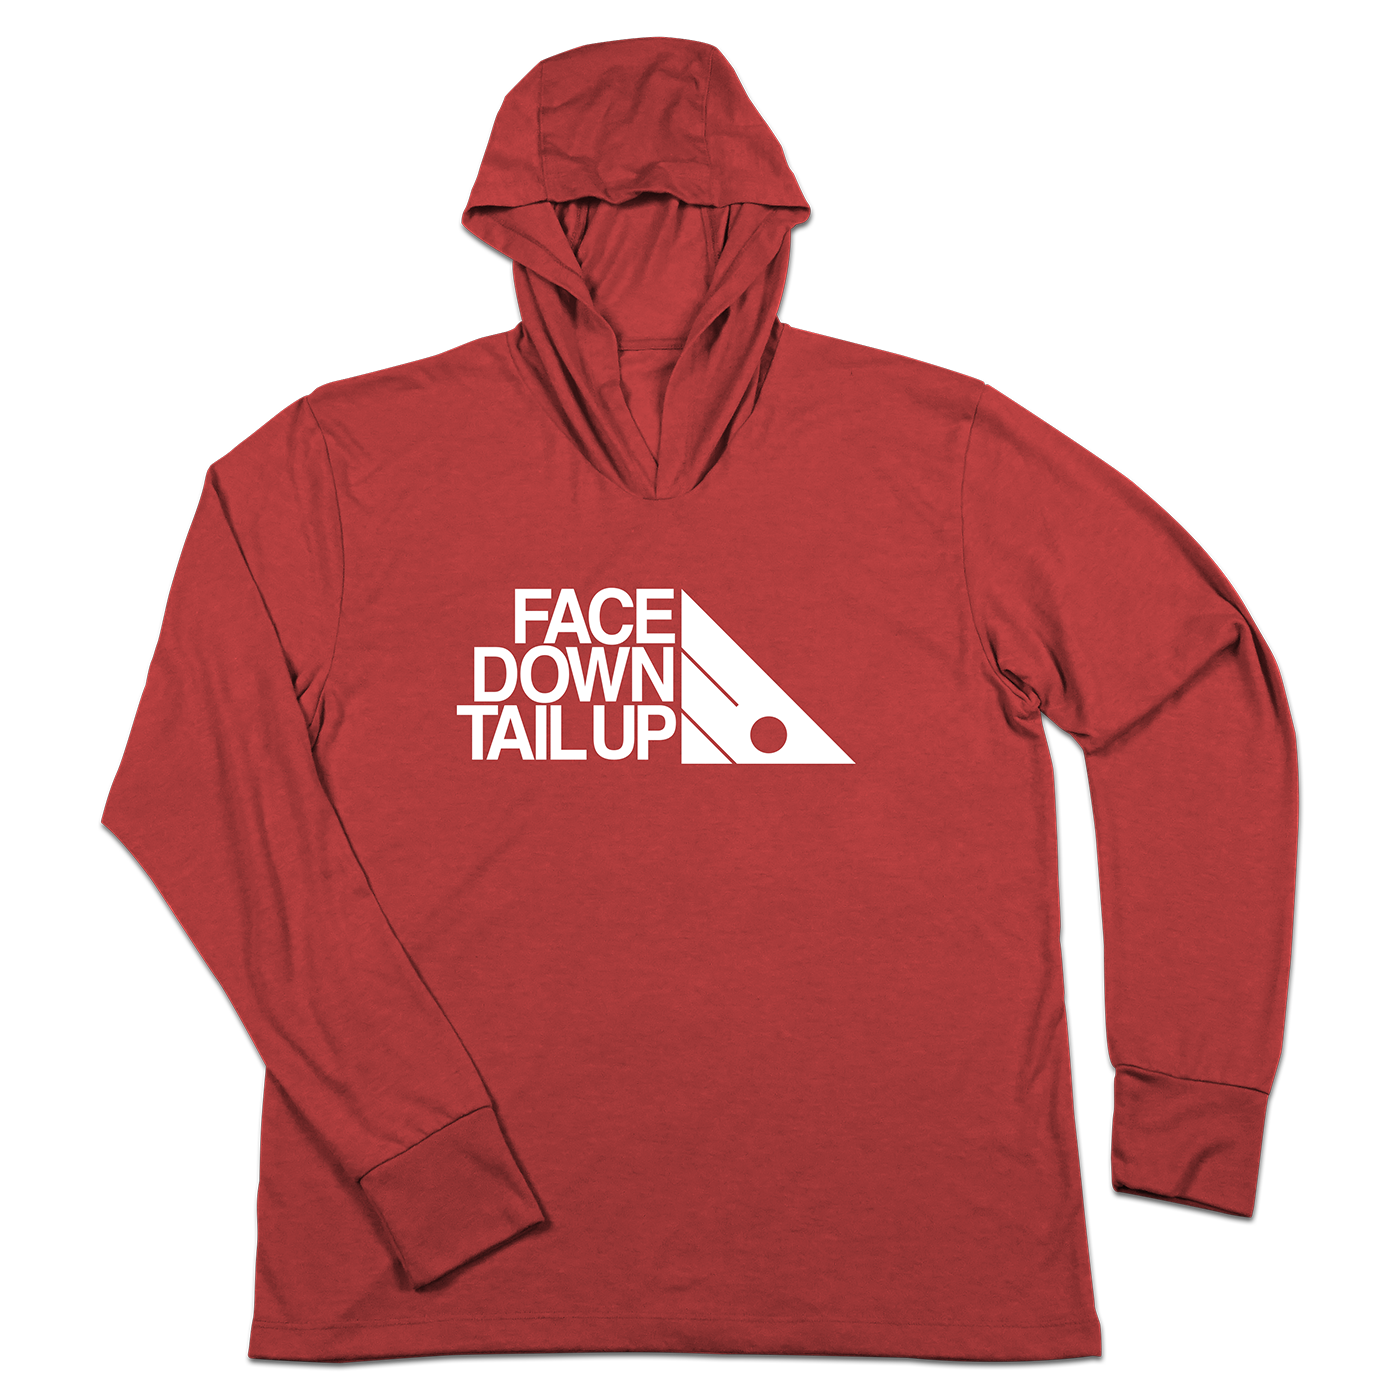 #FACEDOWNTAILUP TriBlend Hoodie Shirt - Hat Mount for GoPro